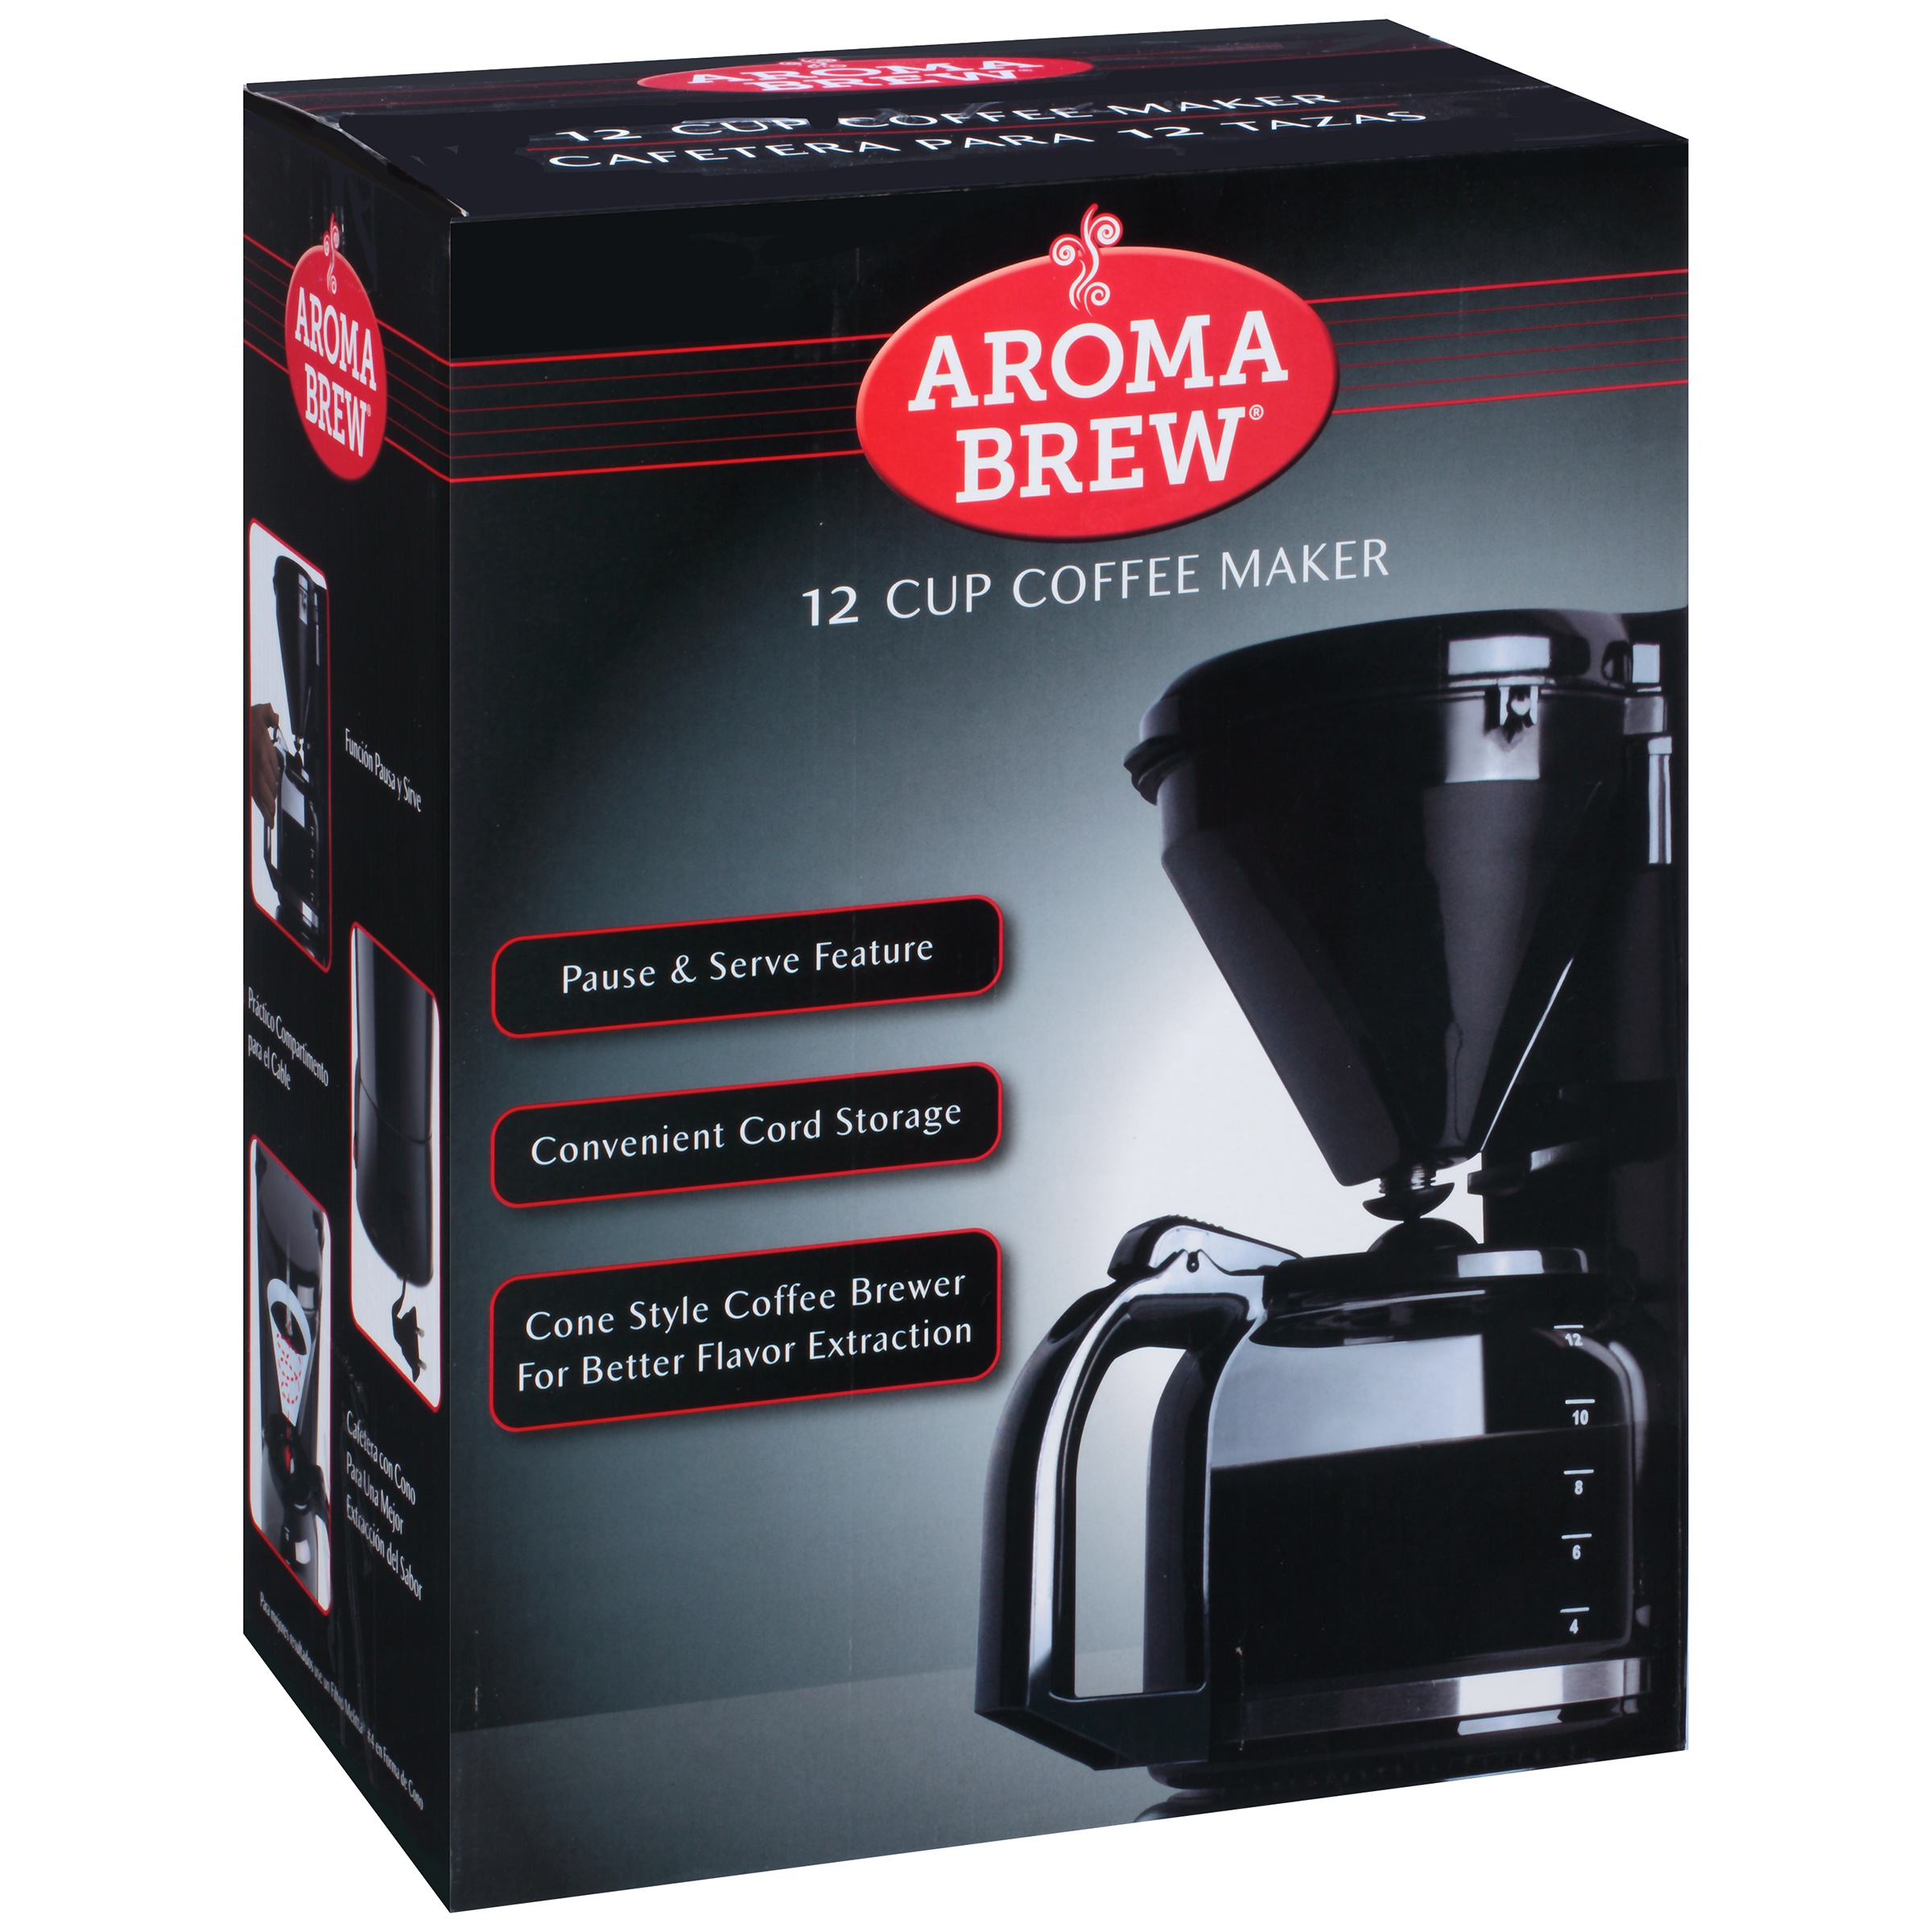 Aroma Brew® Black 12 Cup Coffee Maker Box